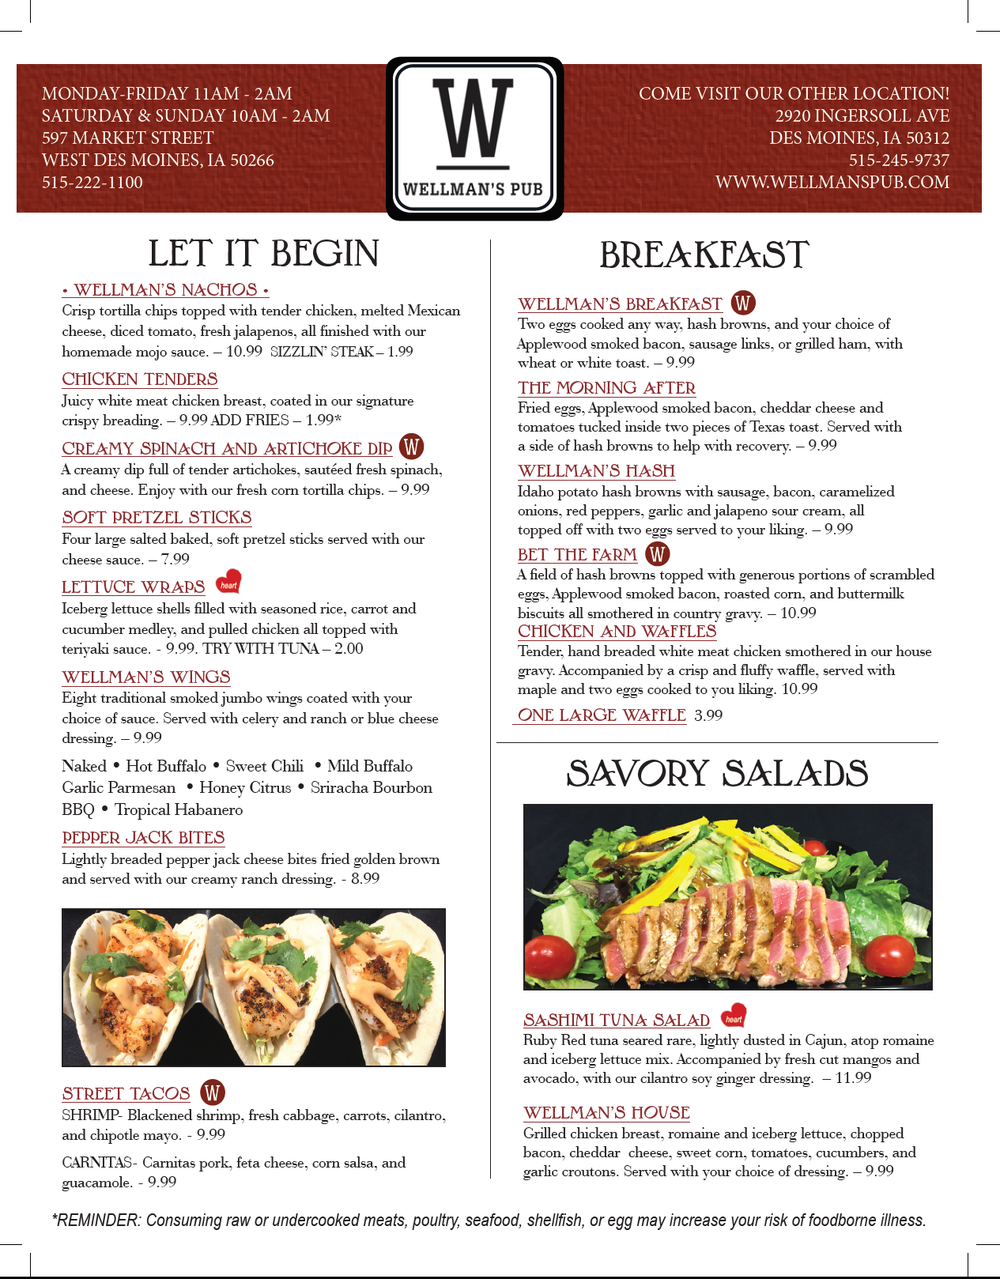 Wellman's Pub and Rooftop Brunch Spring 2019 West Des Moines.png